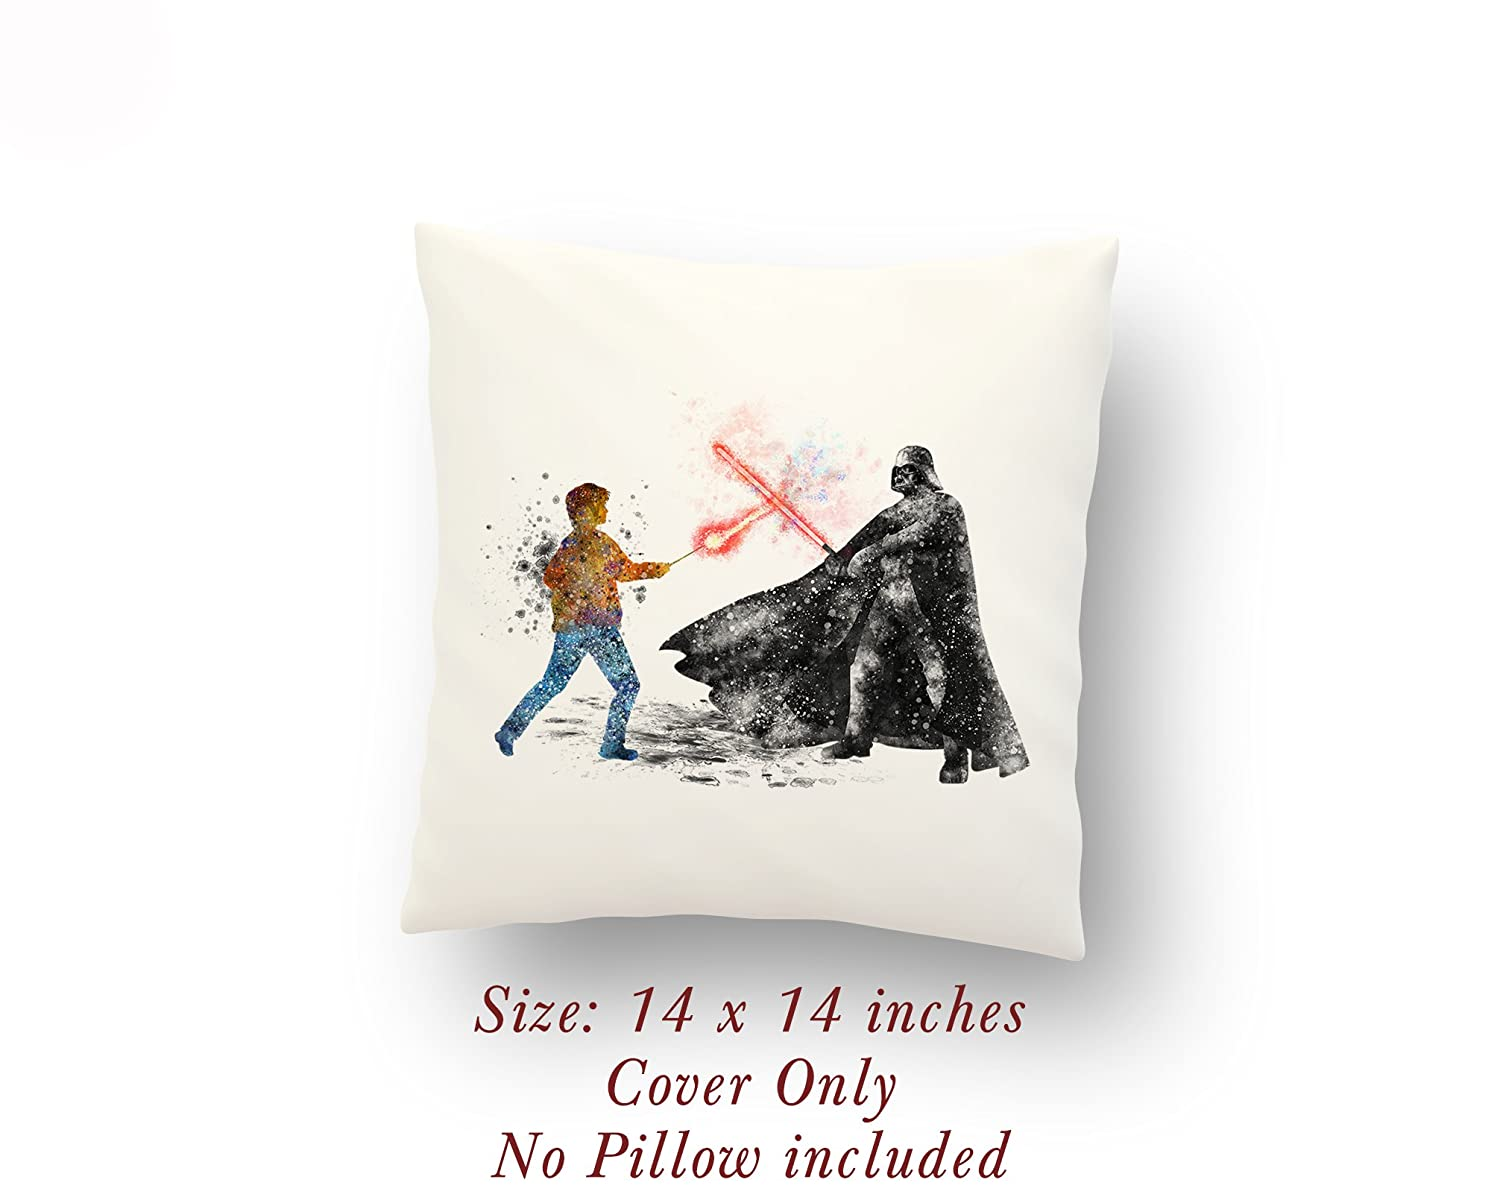 Star Wars Harry Potter vs Darth Vader 14 x 14 inches Pillow Cover